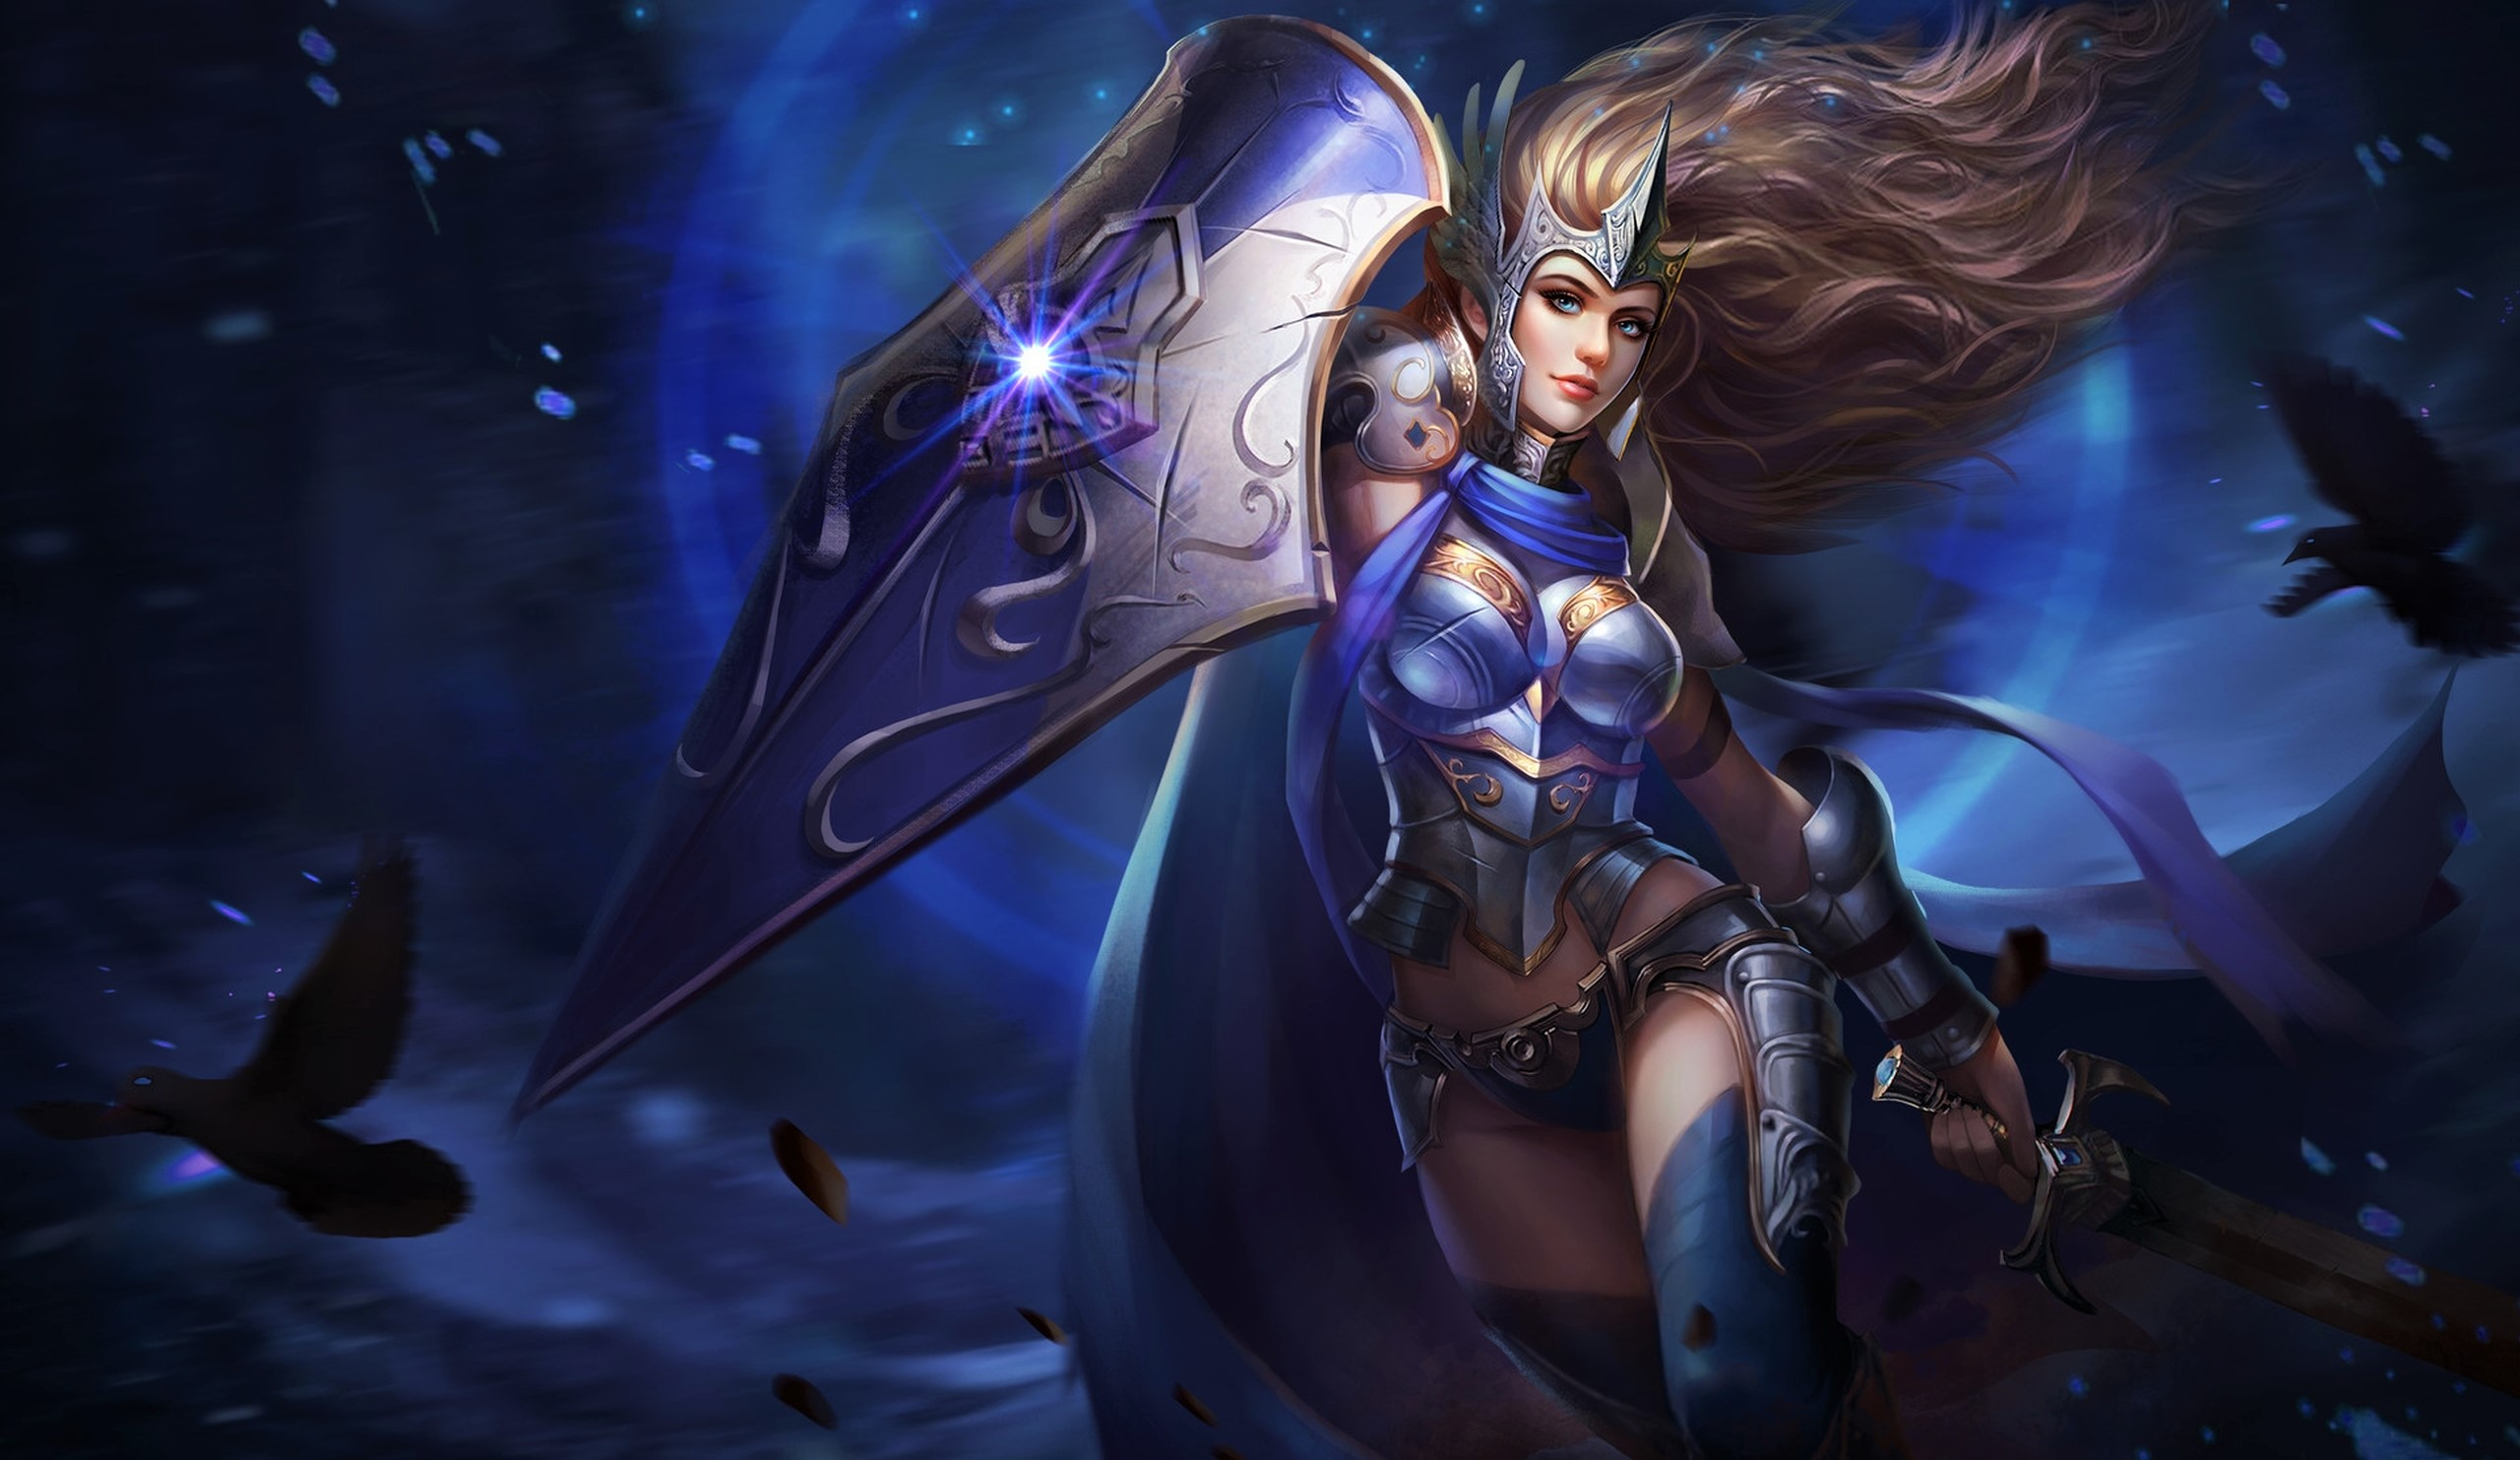 Fantasy Warrior Girl With Shield And Sword, HD Fantasy Girls, 4k Wallpapers, Images, Backgrounds ...